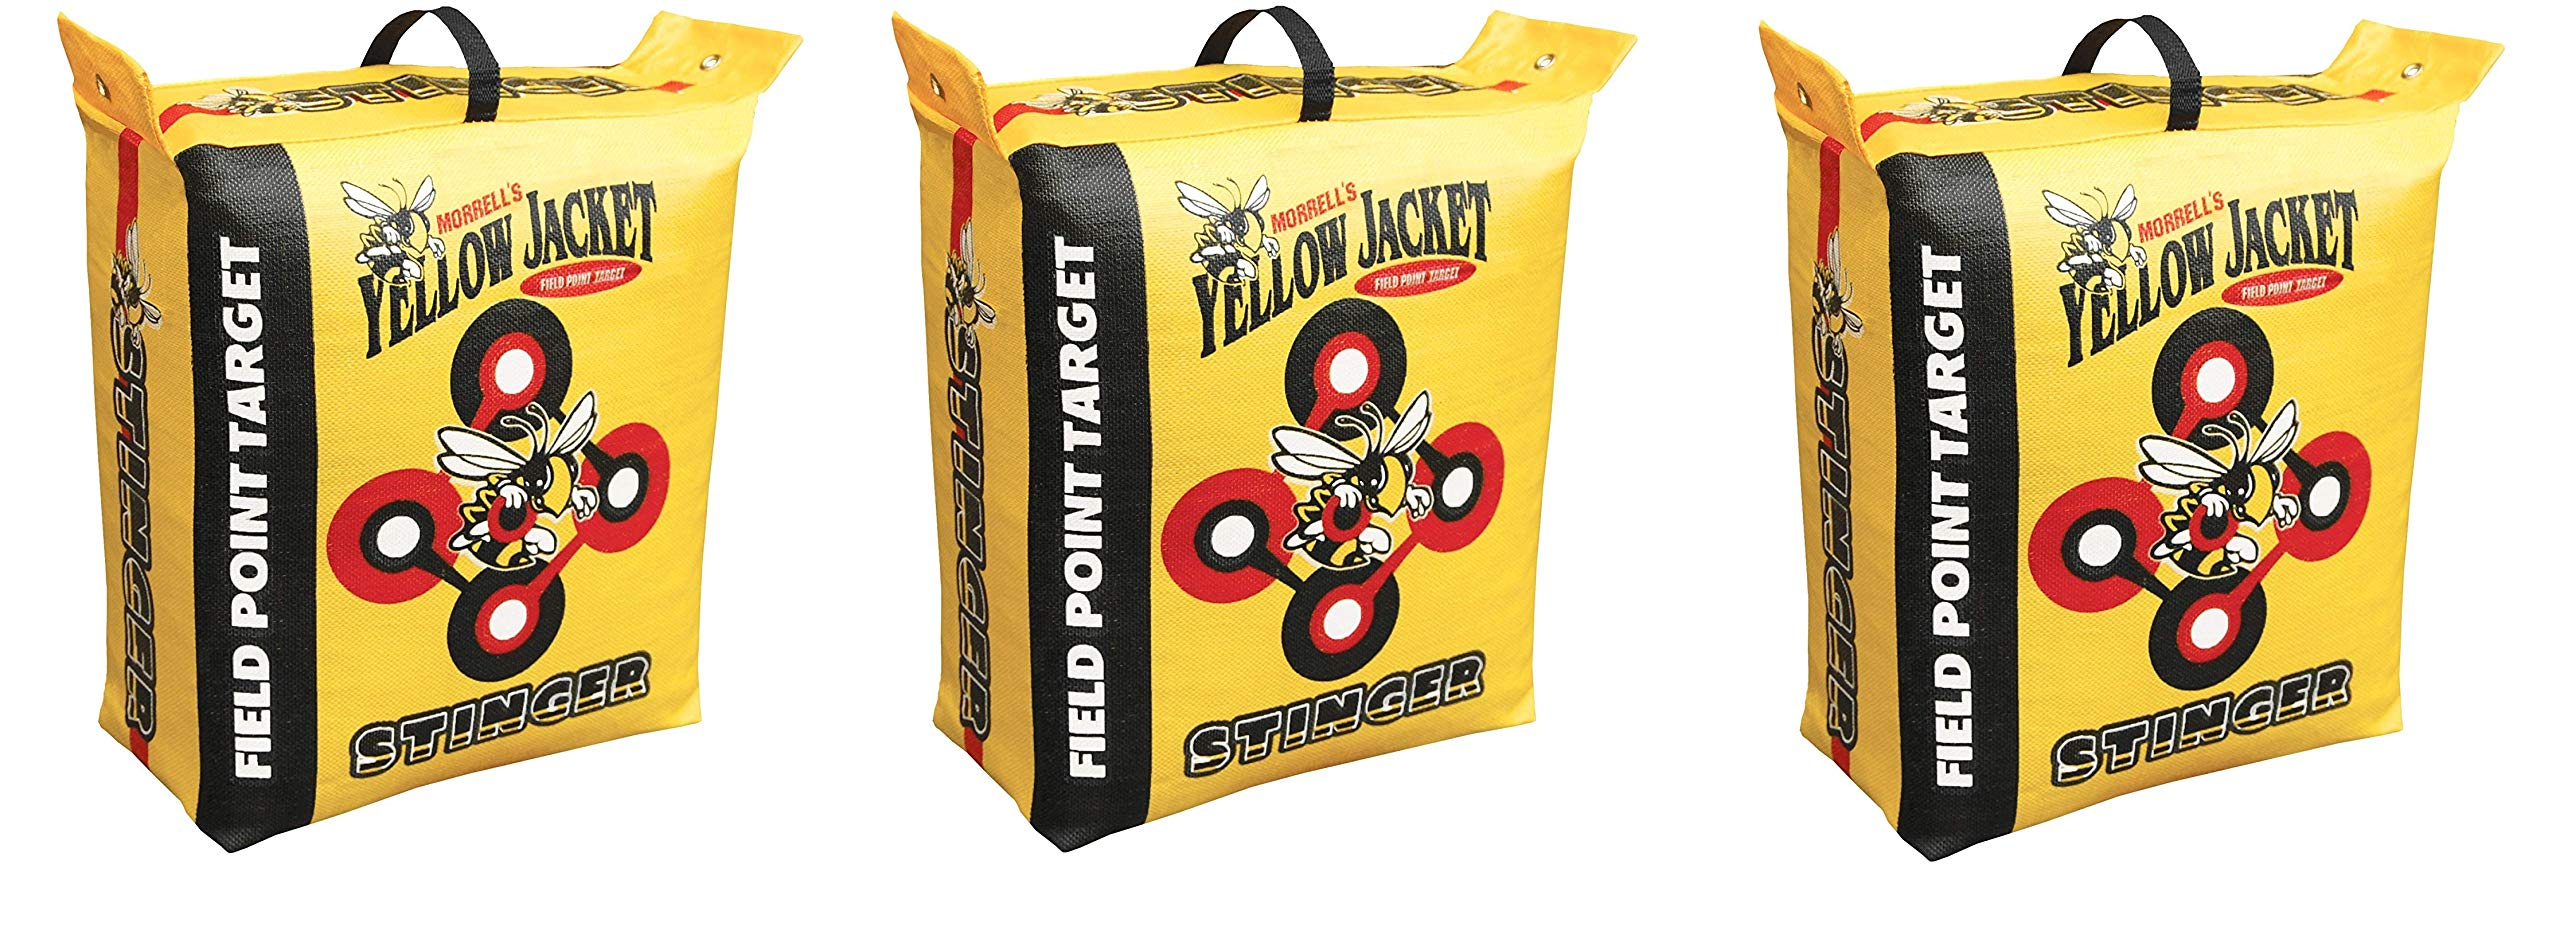 Morrell Yellow Jacket Stinger Field Point Bag Archery Target - Great for Compound and Traditional Bows (3-Pack)